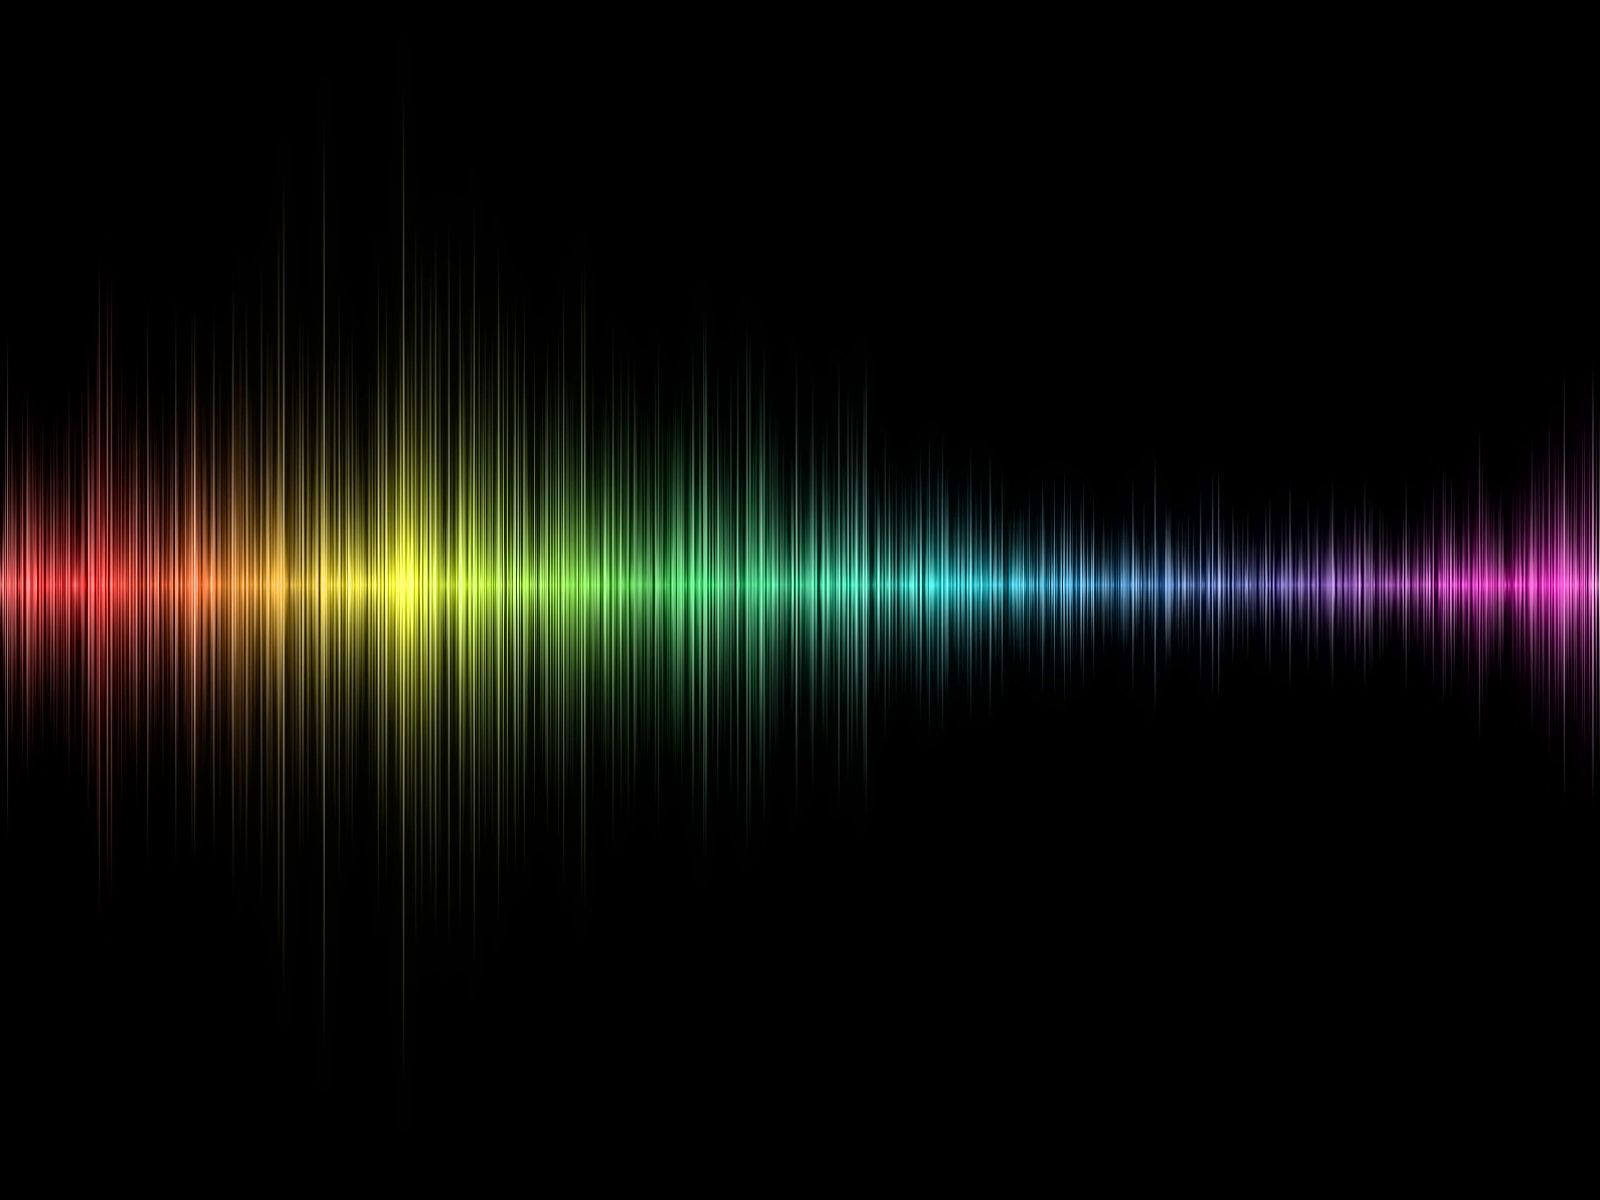 Wallpapers For Cool Sound Waves Wallpaper Waves Wallpaper Music Wallpaper Sound Waves